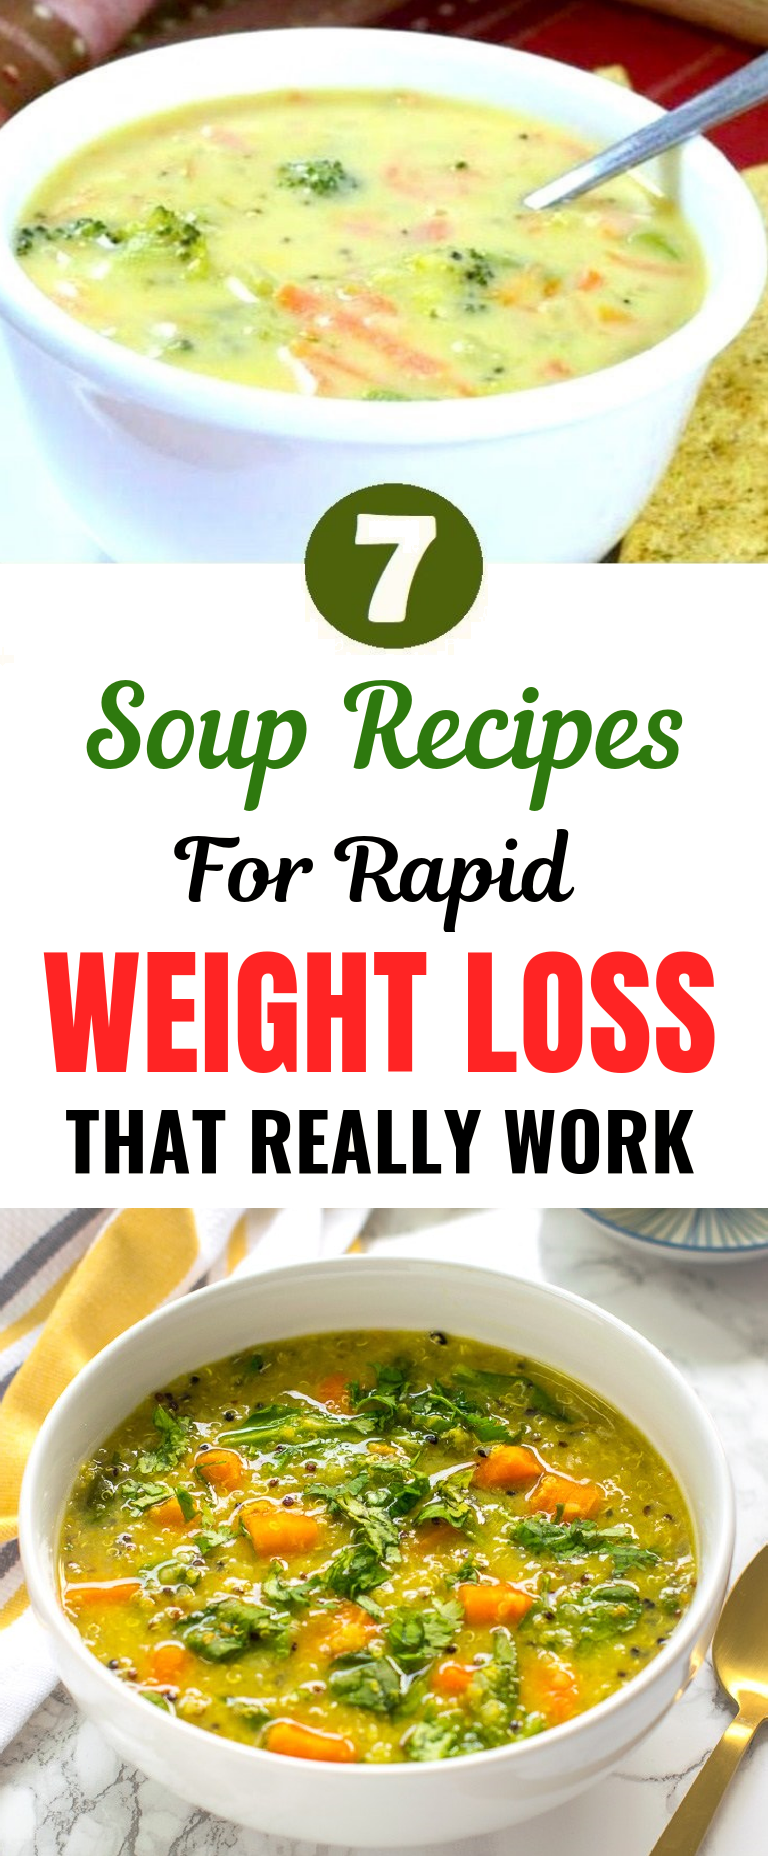 7 Soup Recipes for Rapid Weight Loss That Really Work Losing 10 pounds in just a week seem like science fiction but its fairly possible if you ask us Below you can see a...